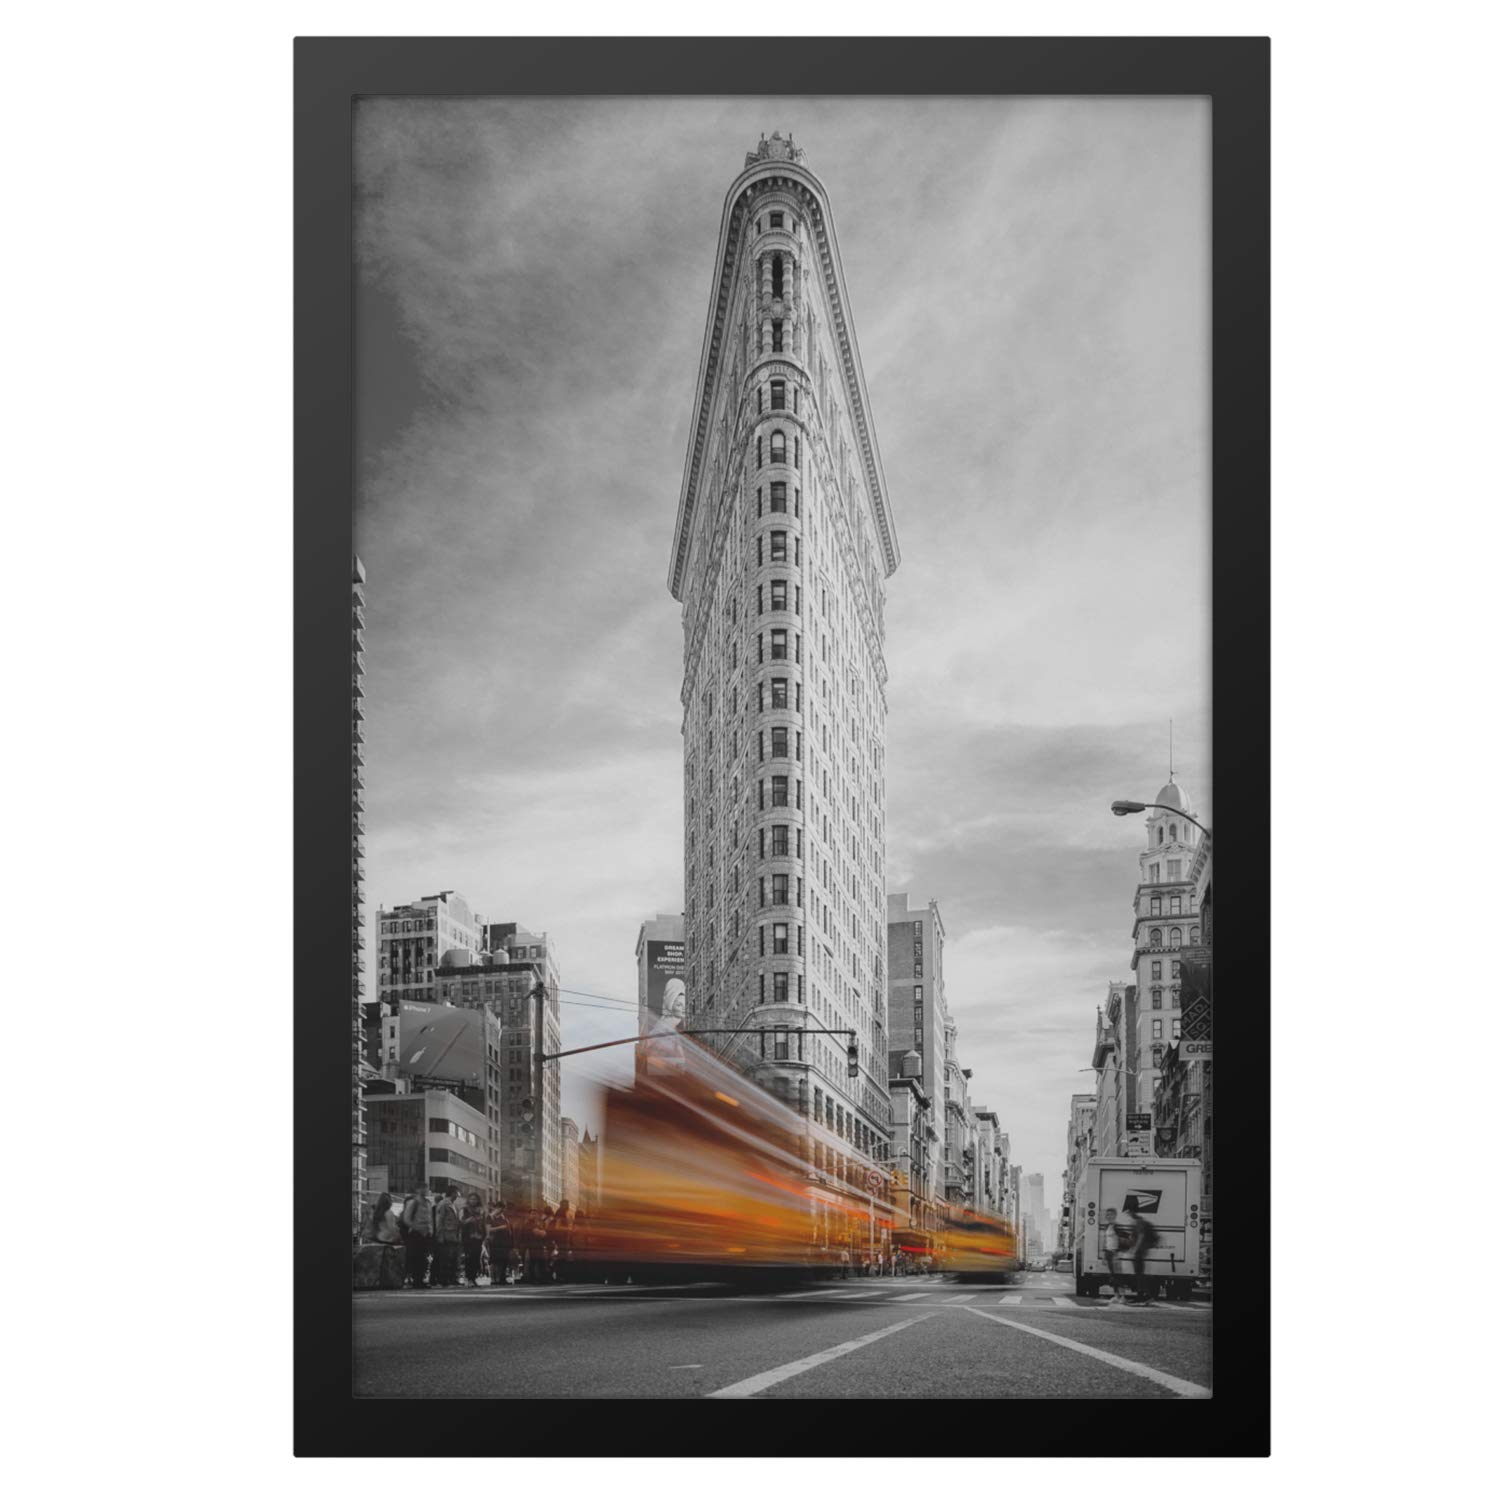 ONE WALL Tempered Glass 13x19 Poster Frame, Black Wood Photo Picture Frame for Wall Vertically or Horizontally Display - Mounting Hardware Included by ONE WALL